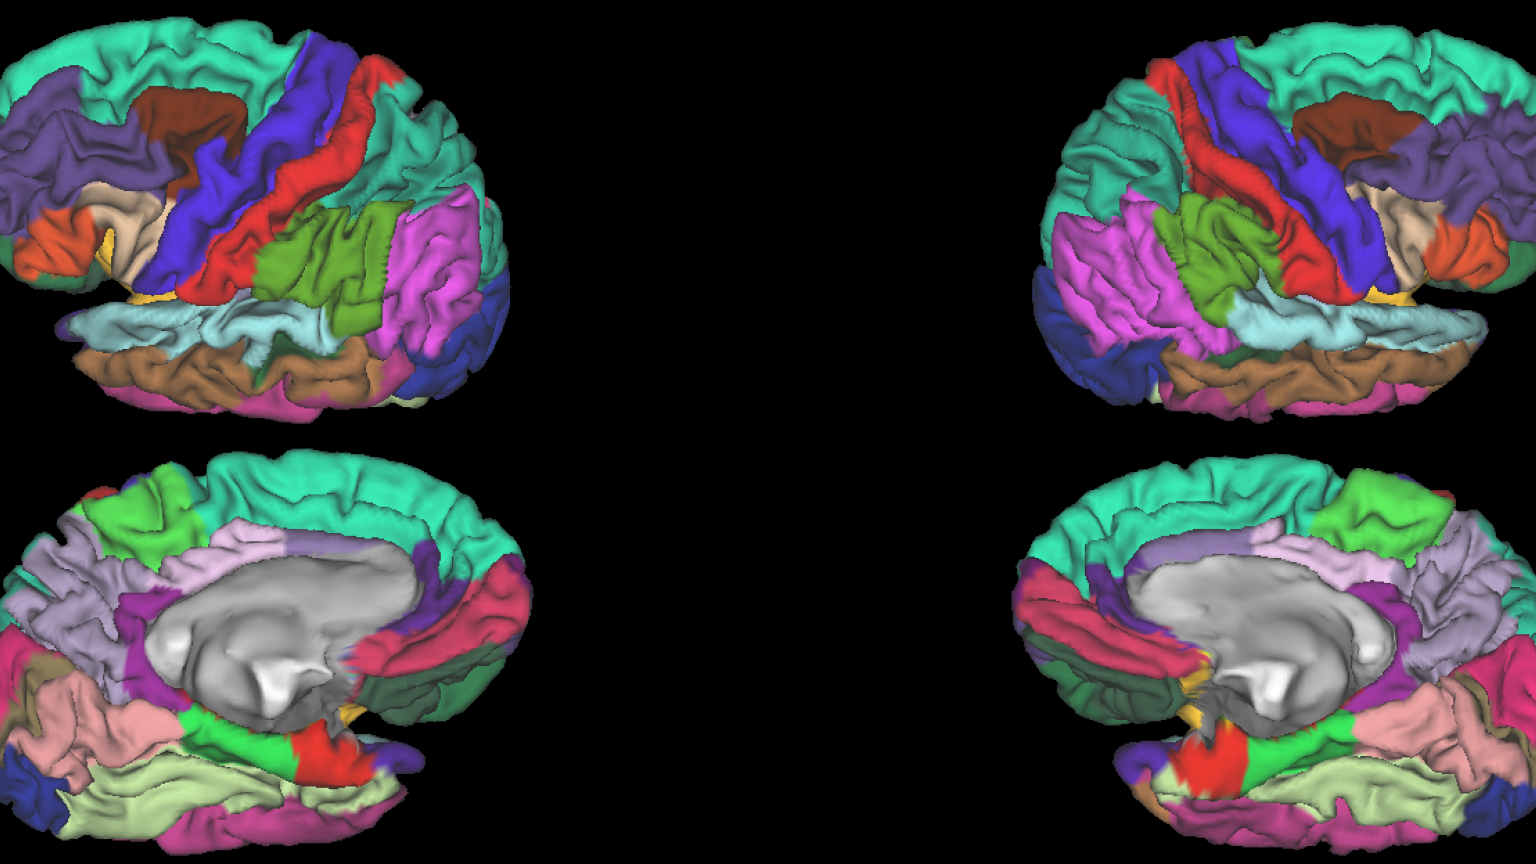 NeuroNetwork for Emerging Therapies Lab photo of MRI dynamic color mapping that qualitates different brain regions